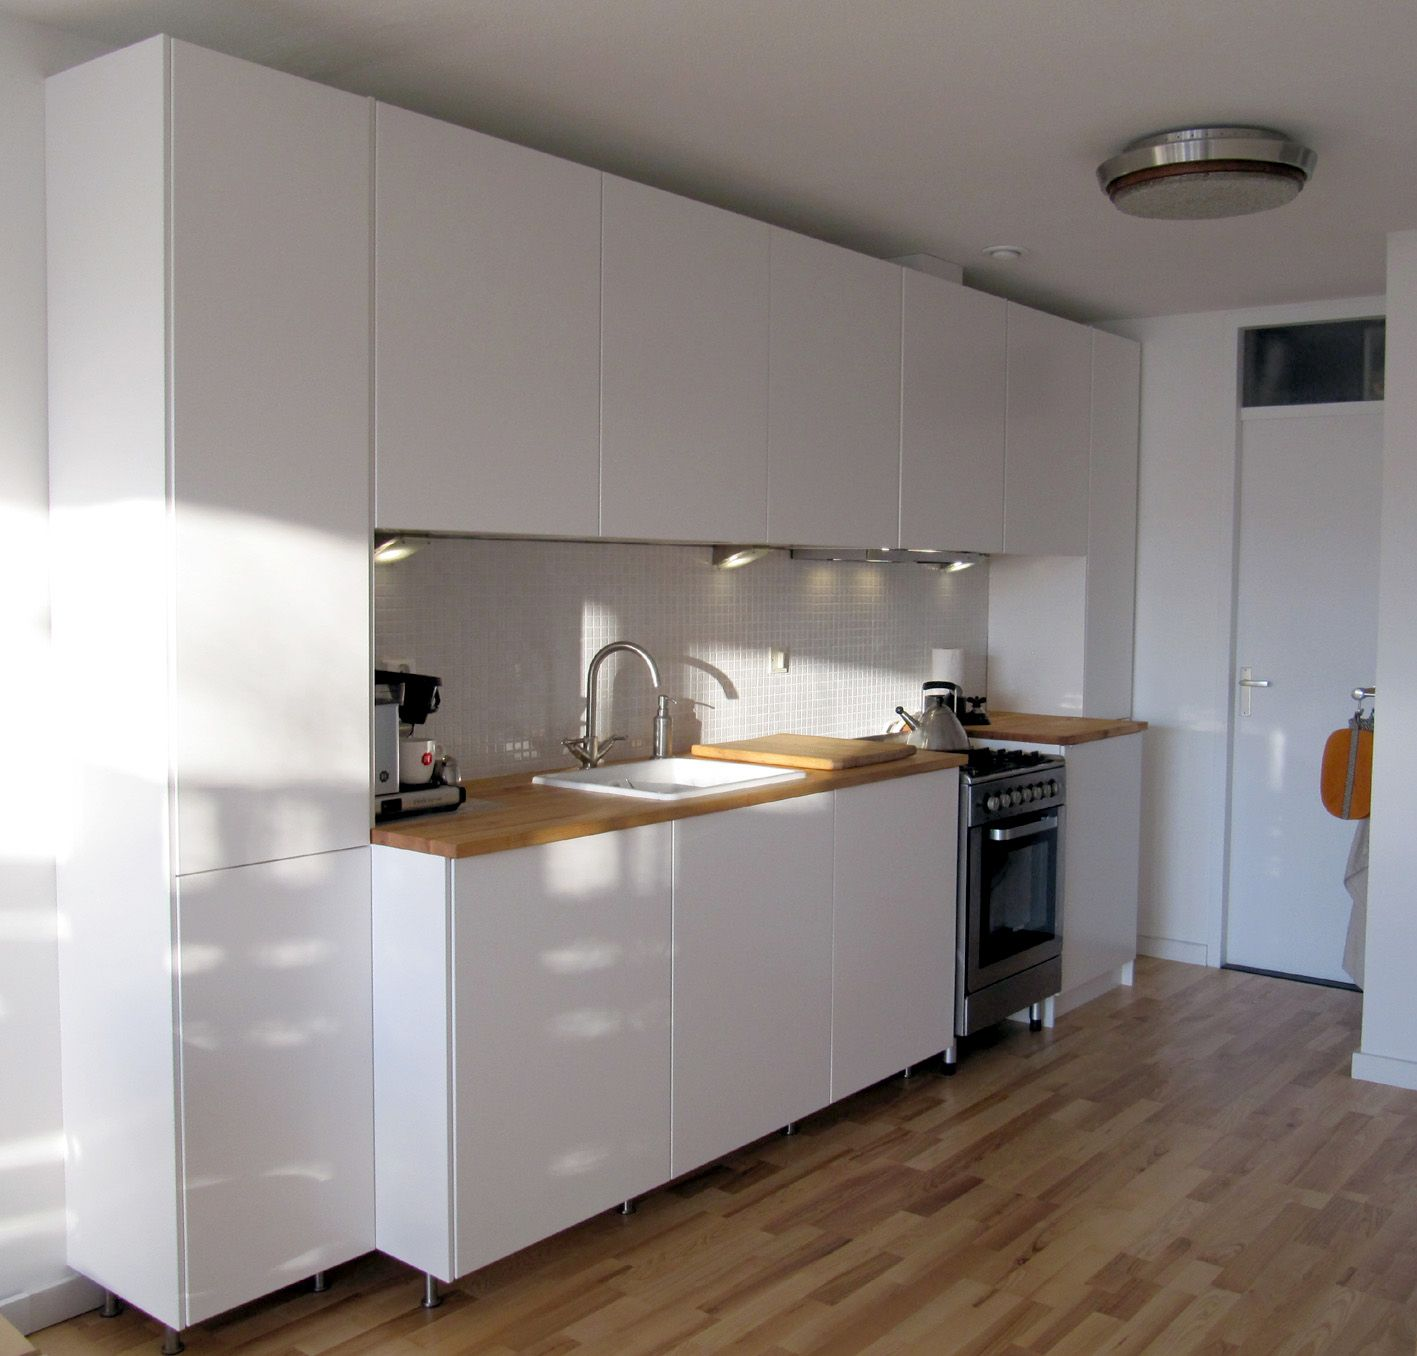 Ikea Küche Blankett Kitchen Is Finished No Birch Plywood Doors But Ikea